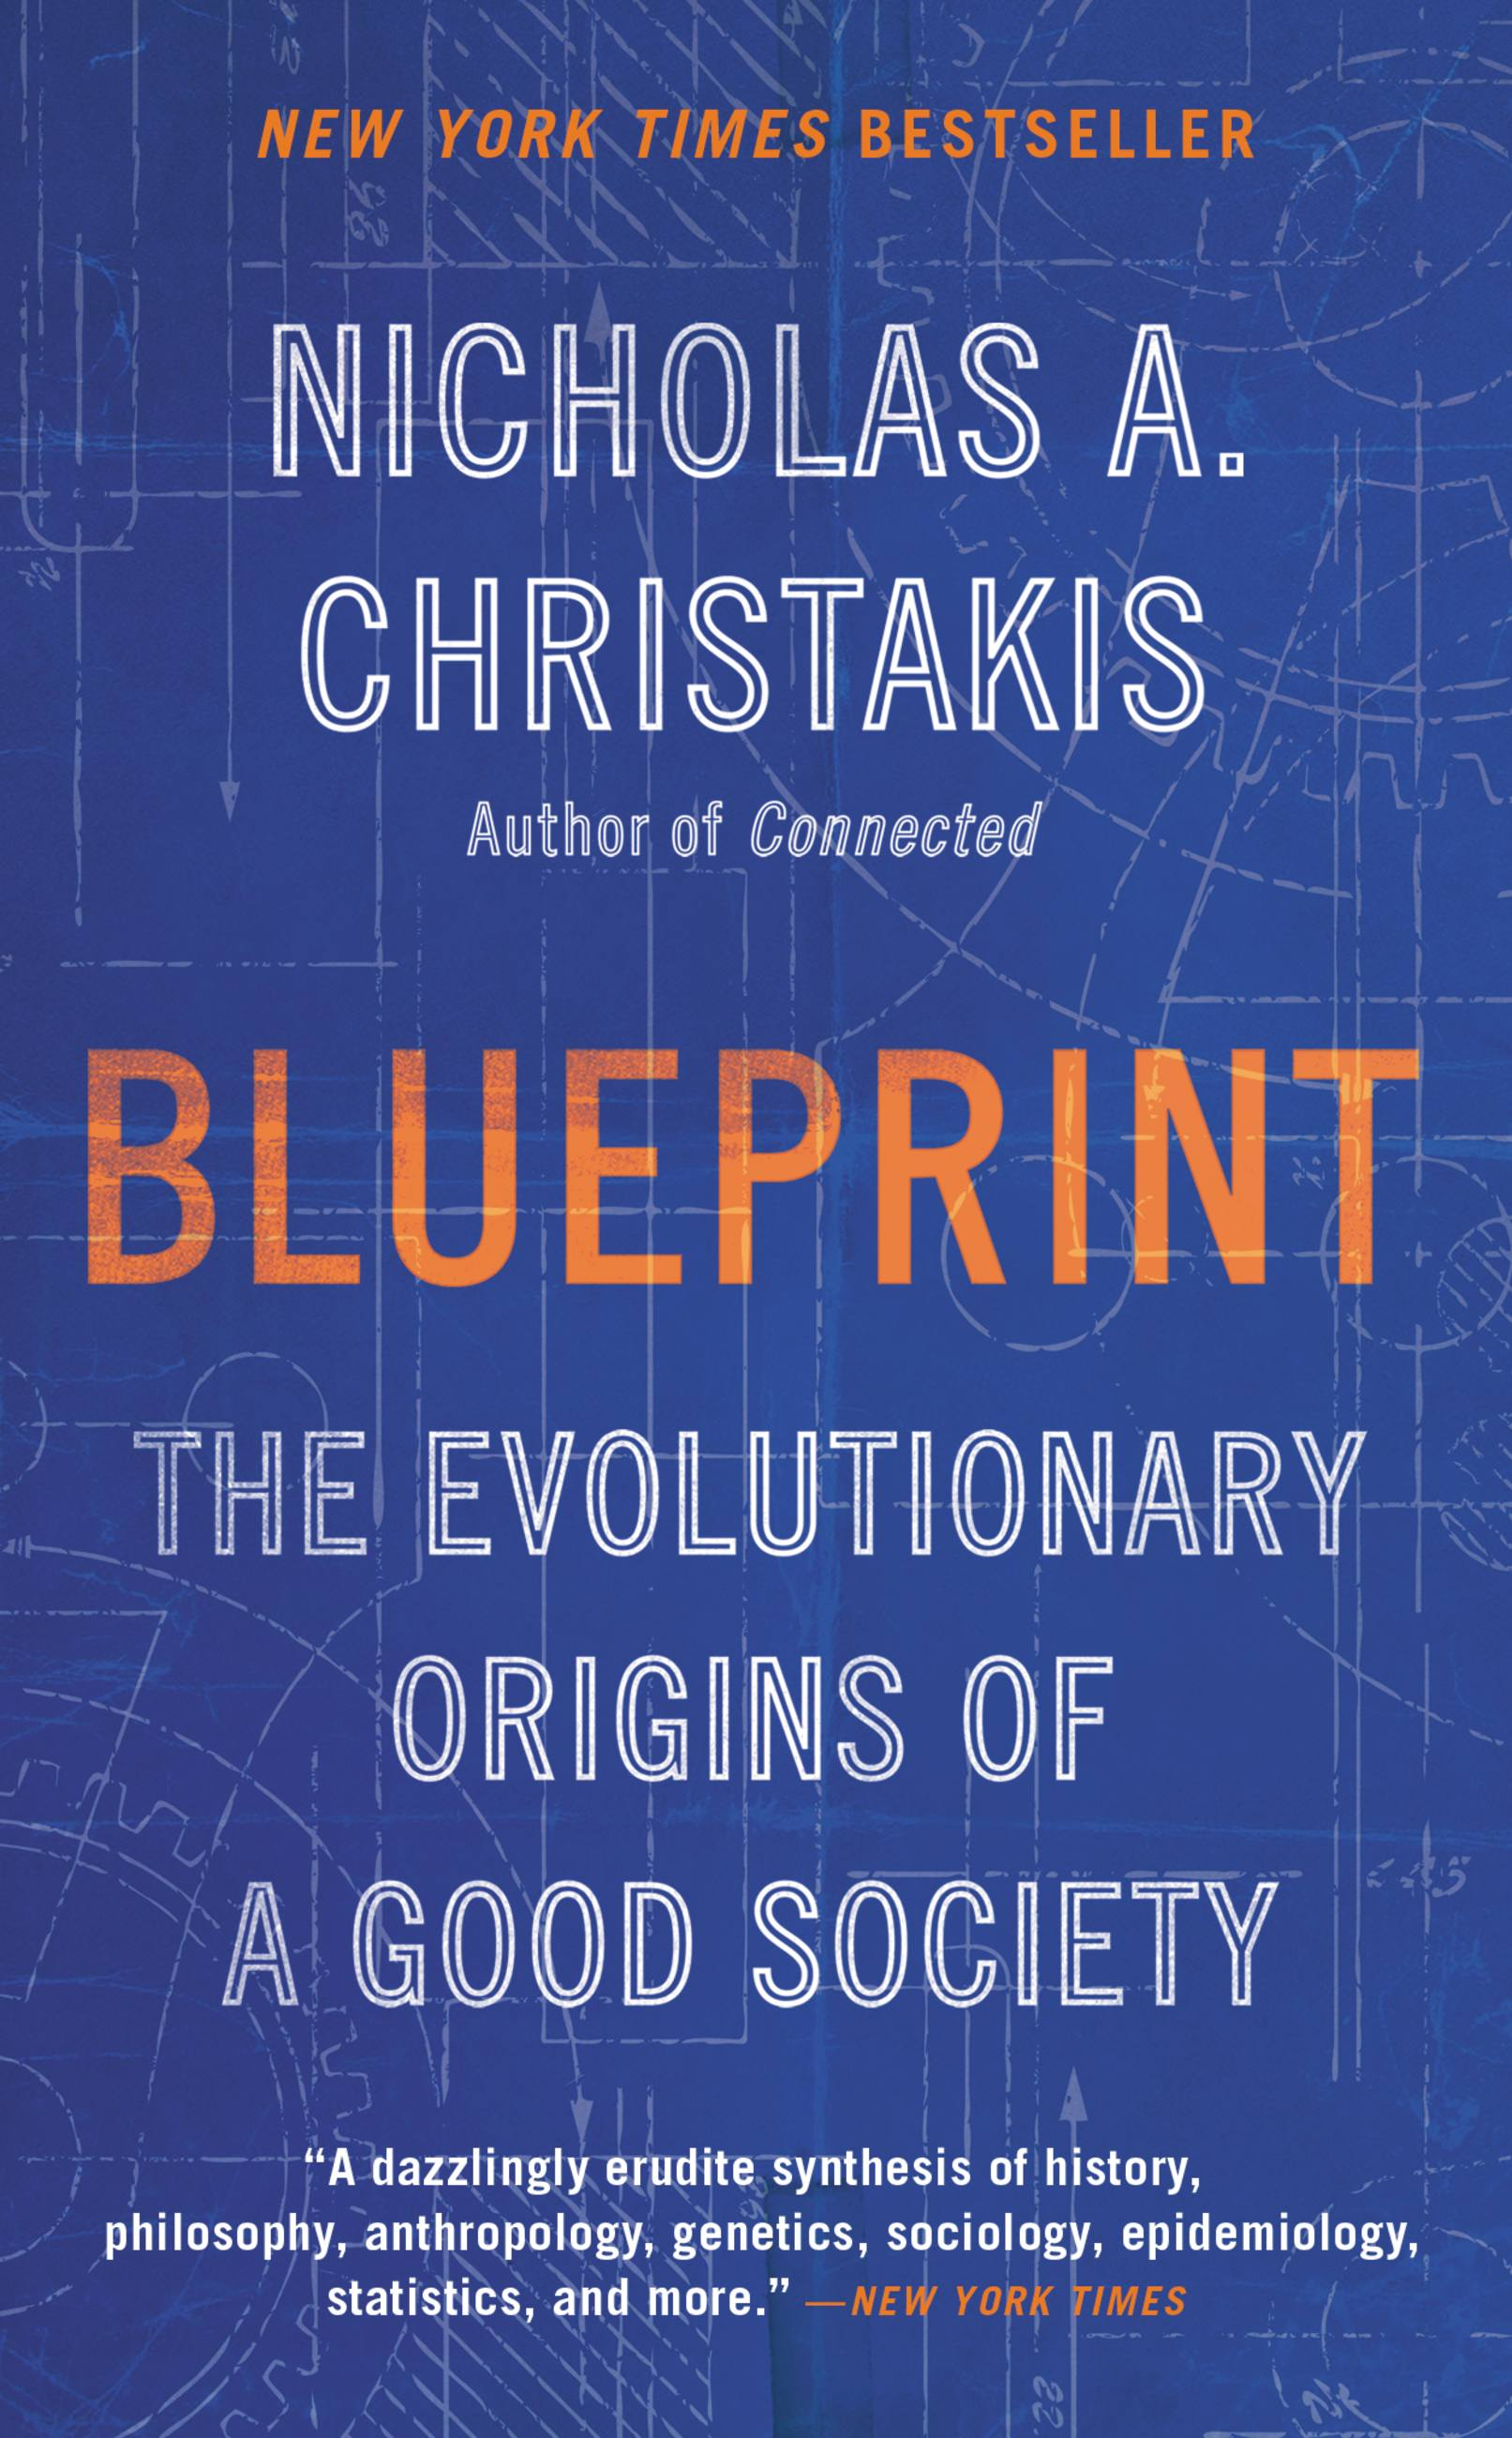 Blueprint The Evolutionary Origins of a Good Society